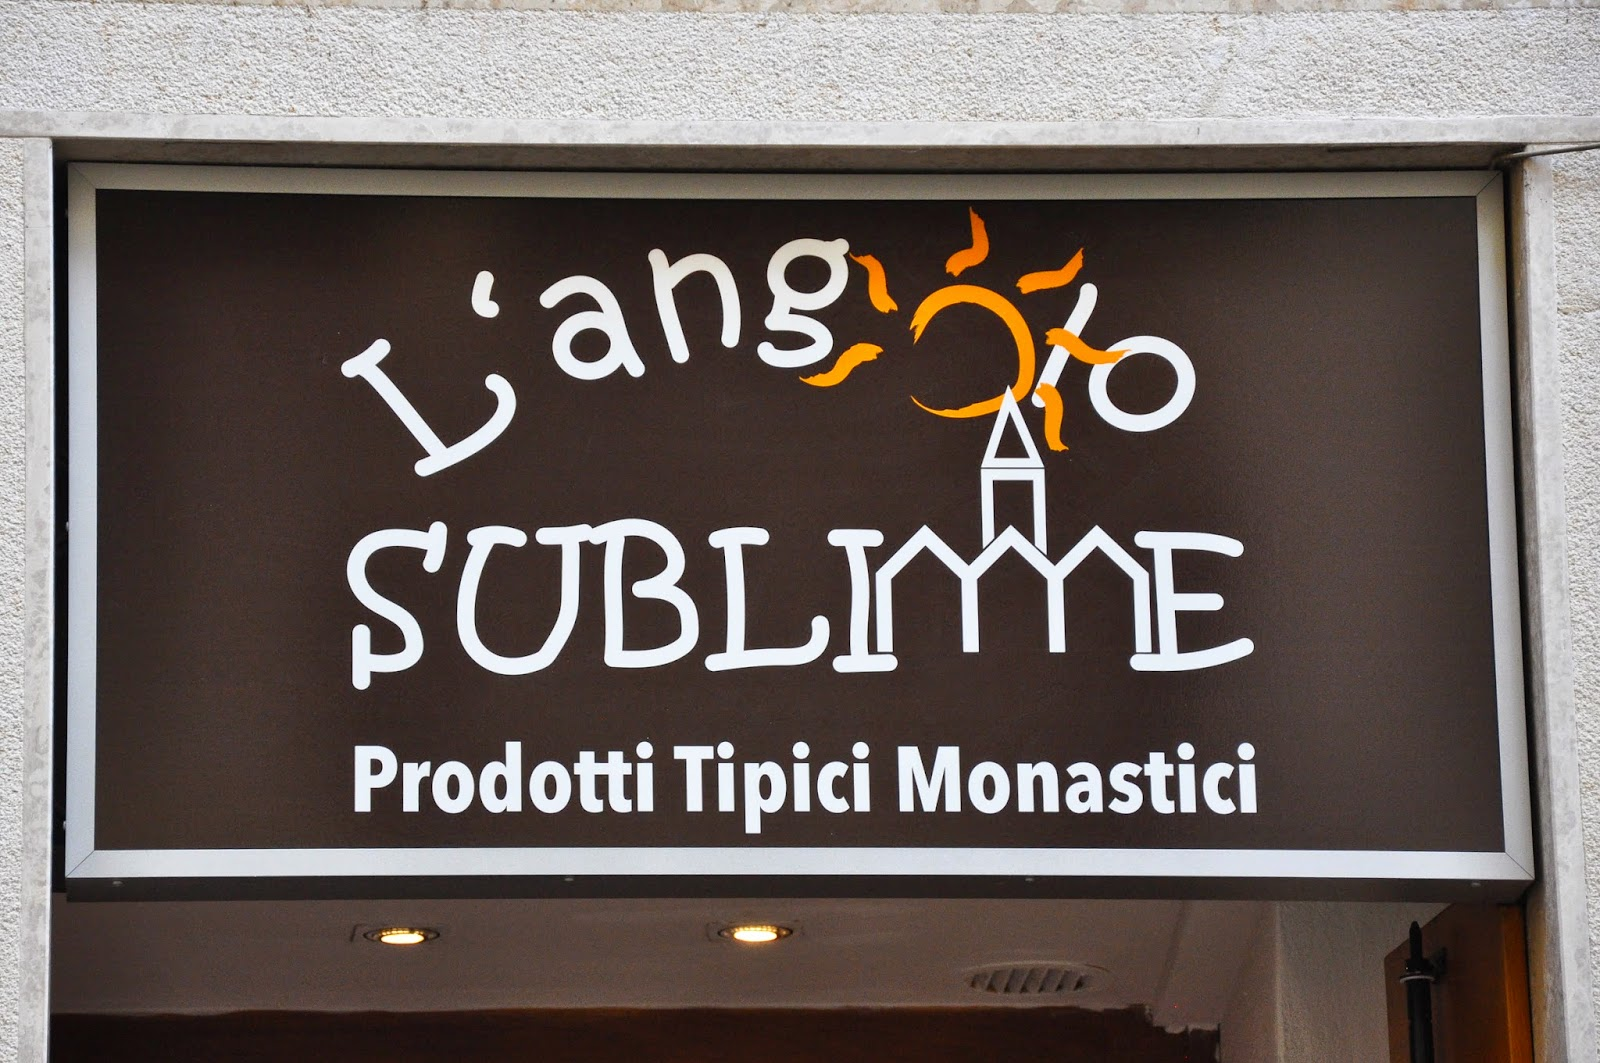 L'Angolo Sublime - a charming shop in Vicenza selling artisan products made in Italian monasteries